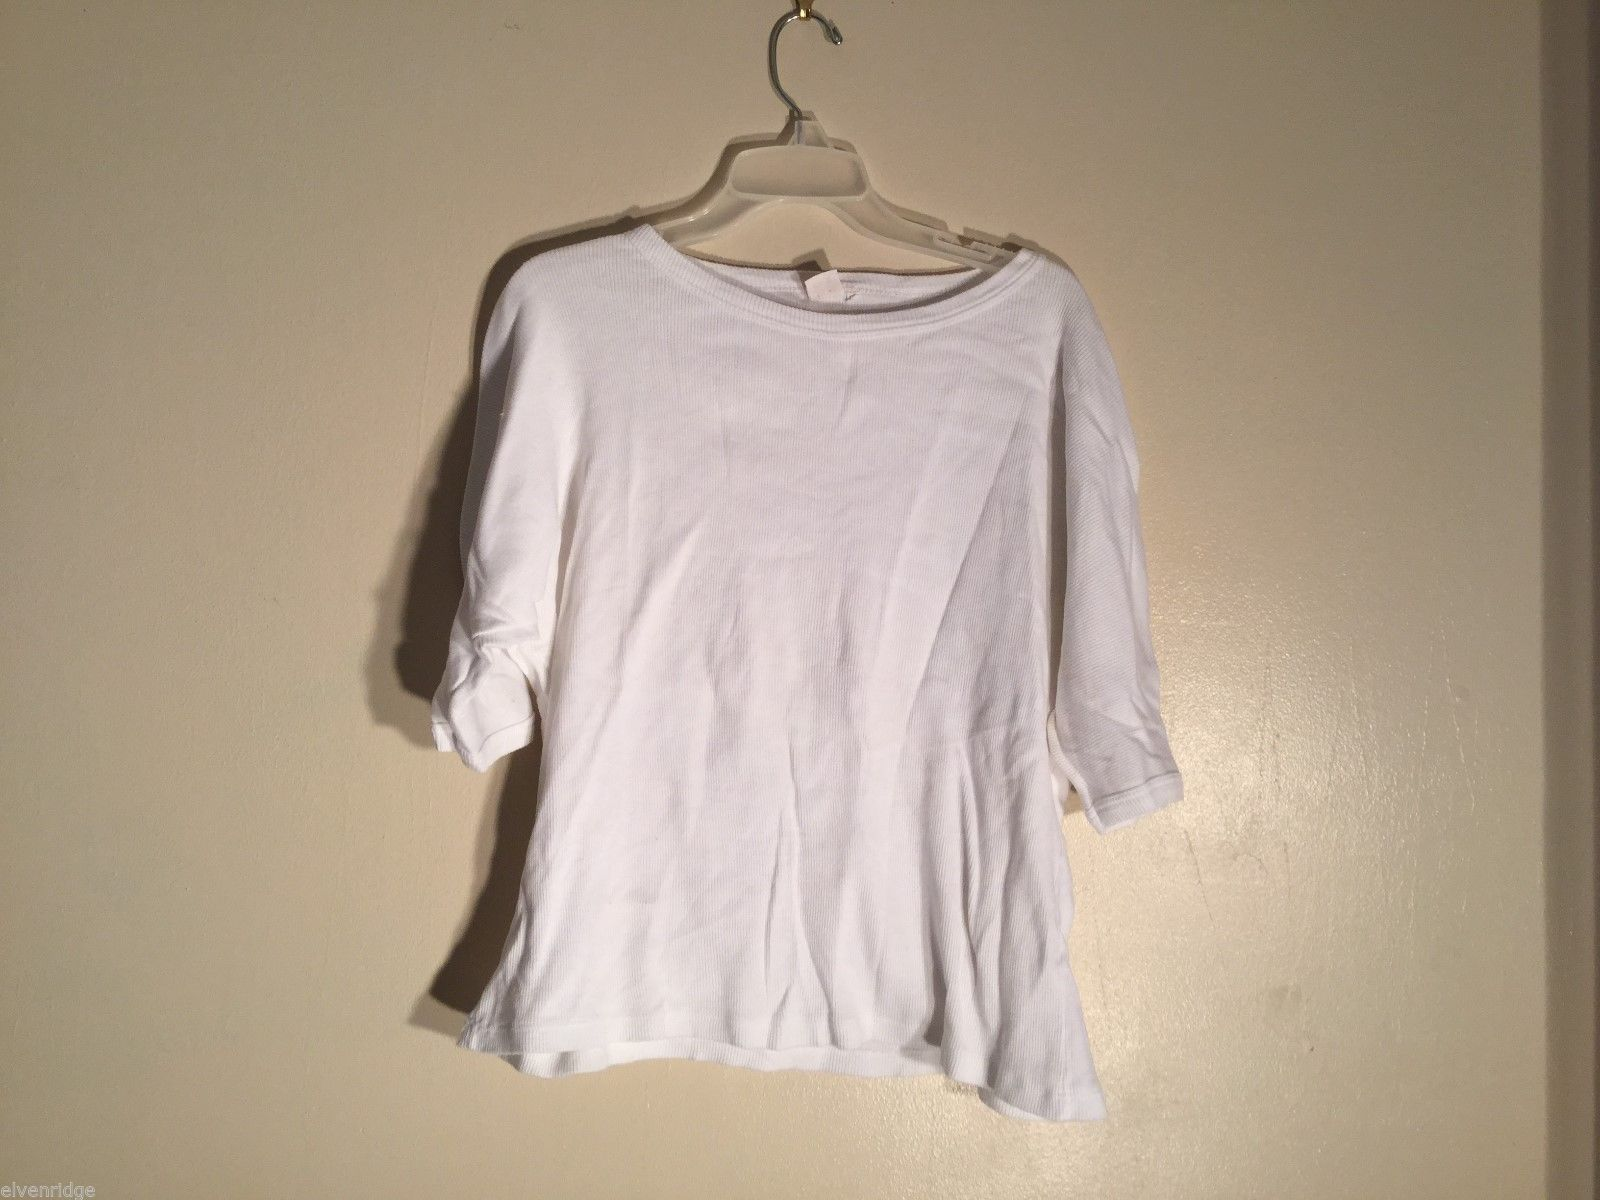 Mens Pile & Pull Mens White Cotton Shirt, Size 2